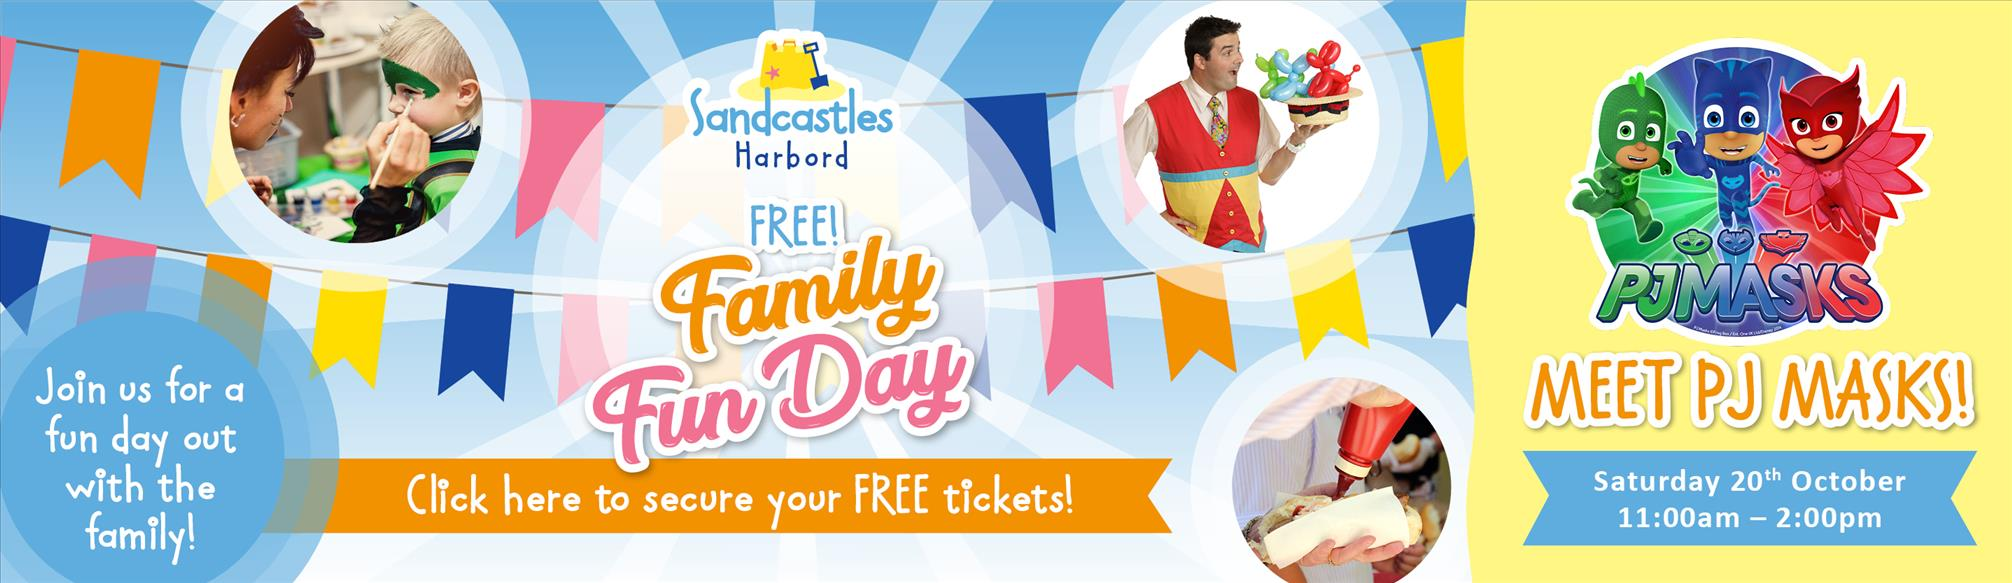 Meet PJ masks at our FREE family fun day at Sandcastles Harbord!